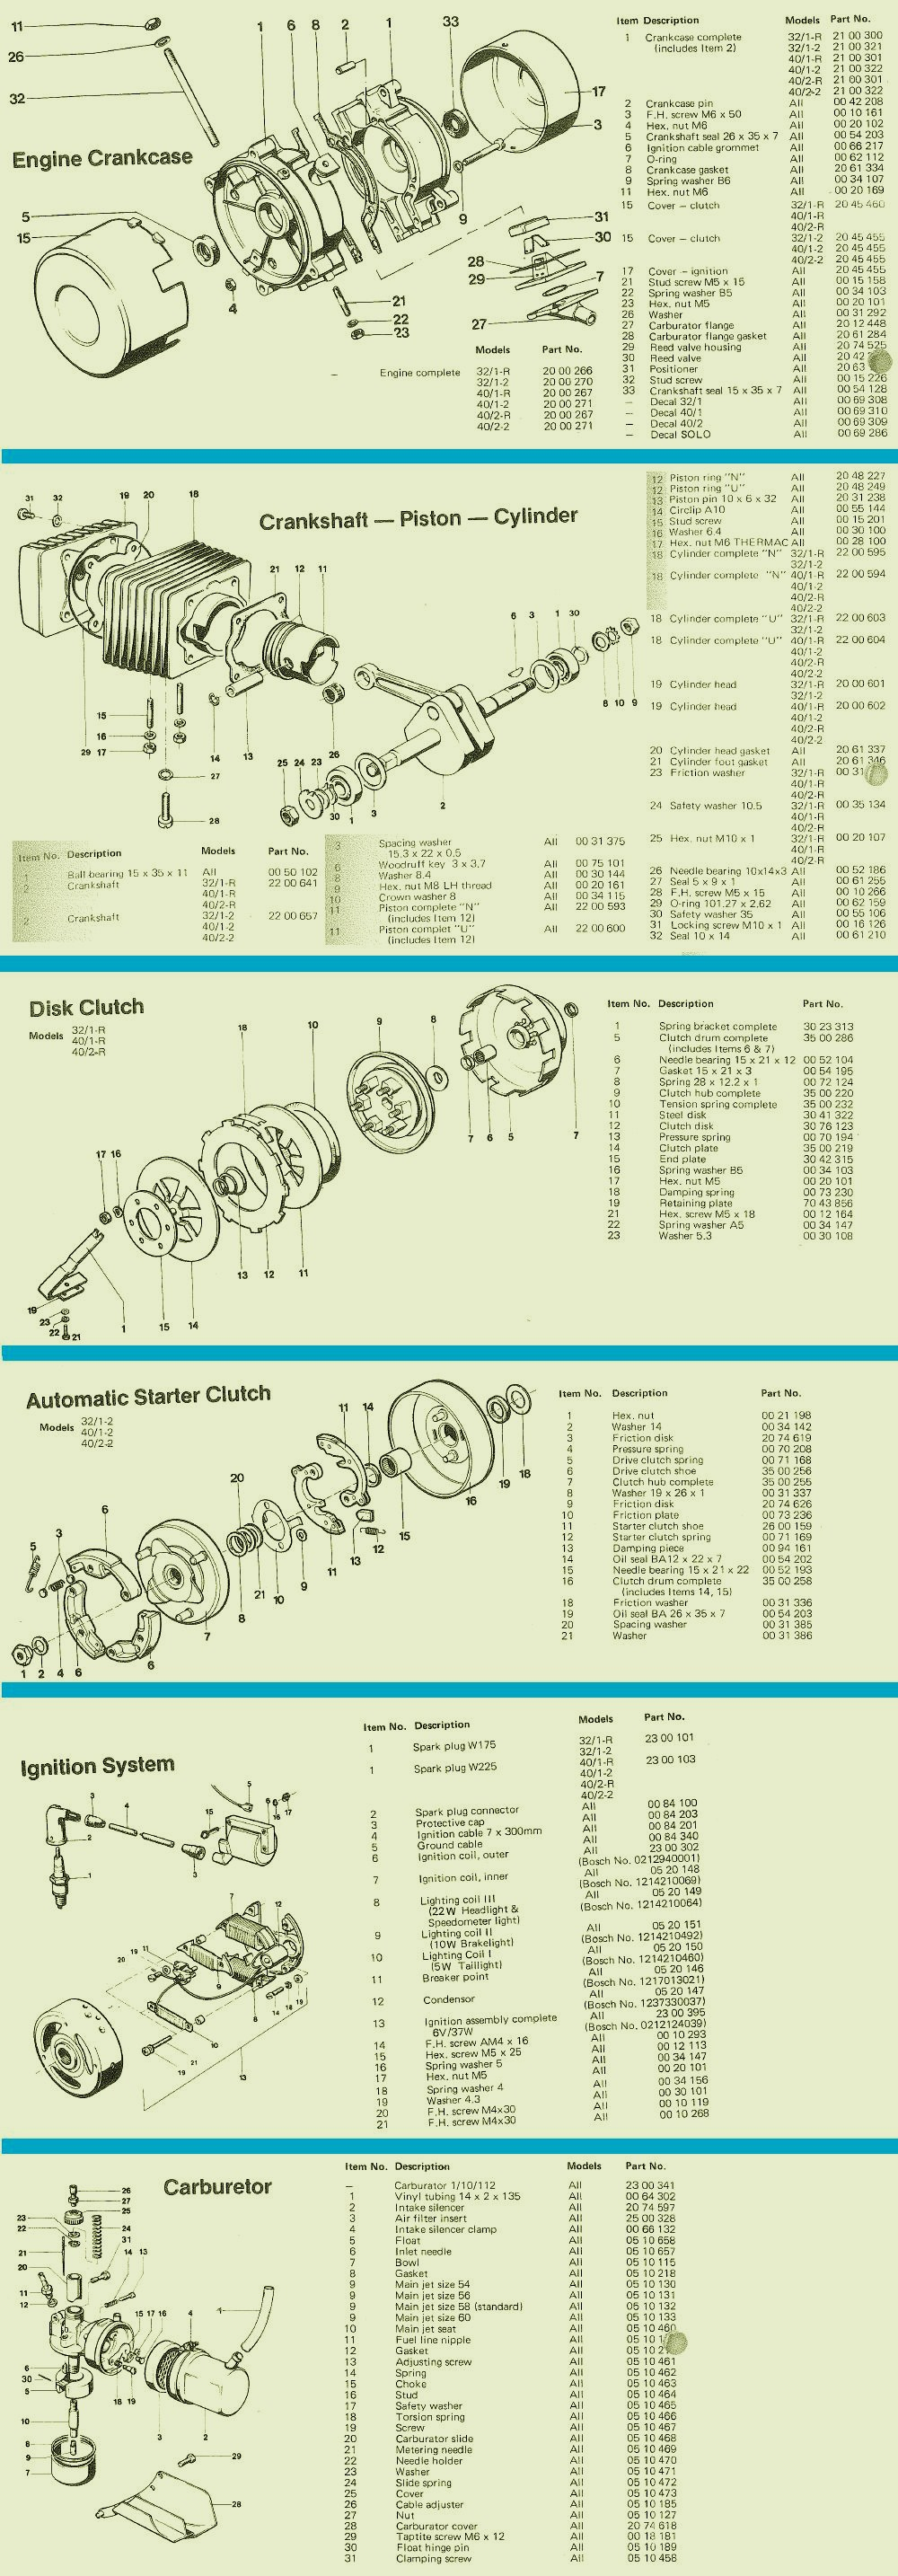 Solo Odyssey Parts Manual Engine